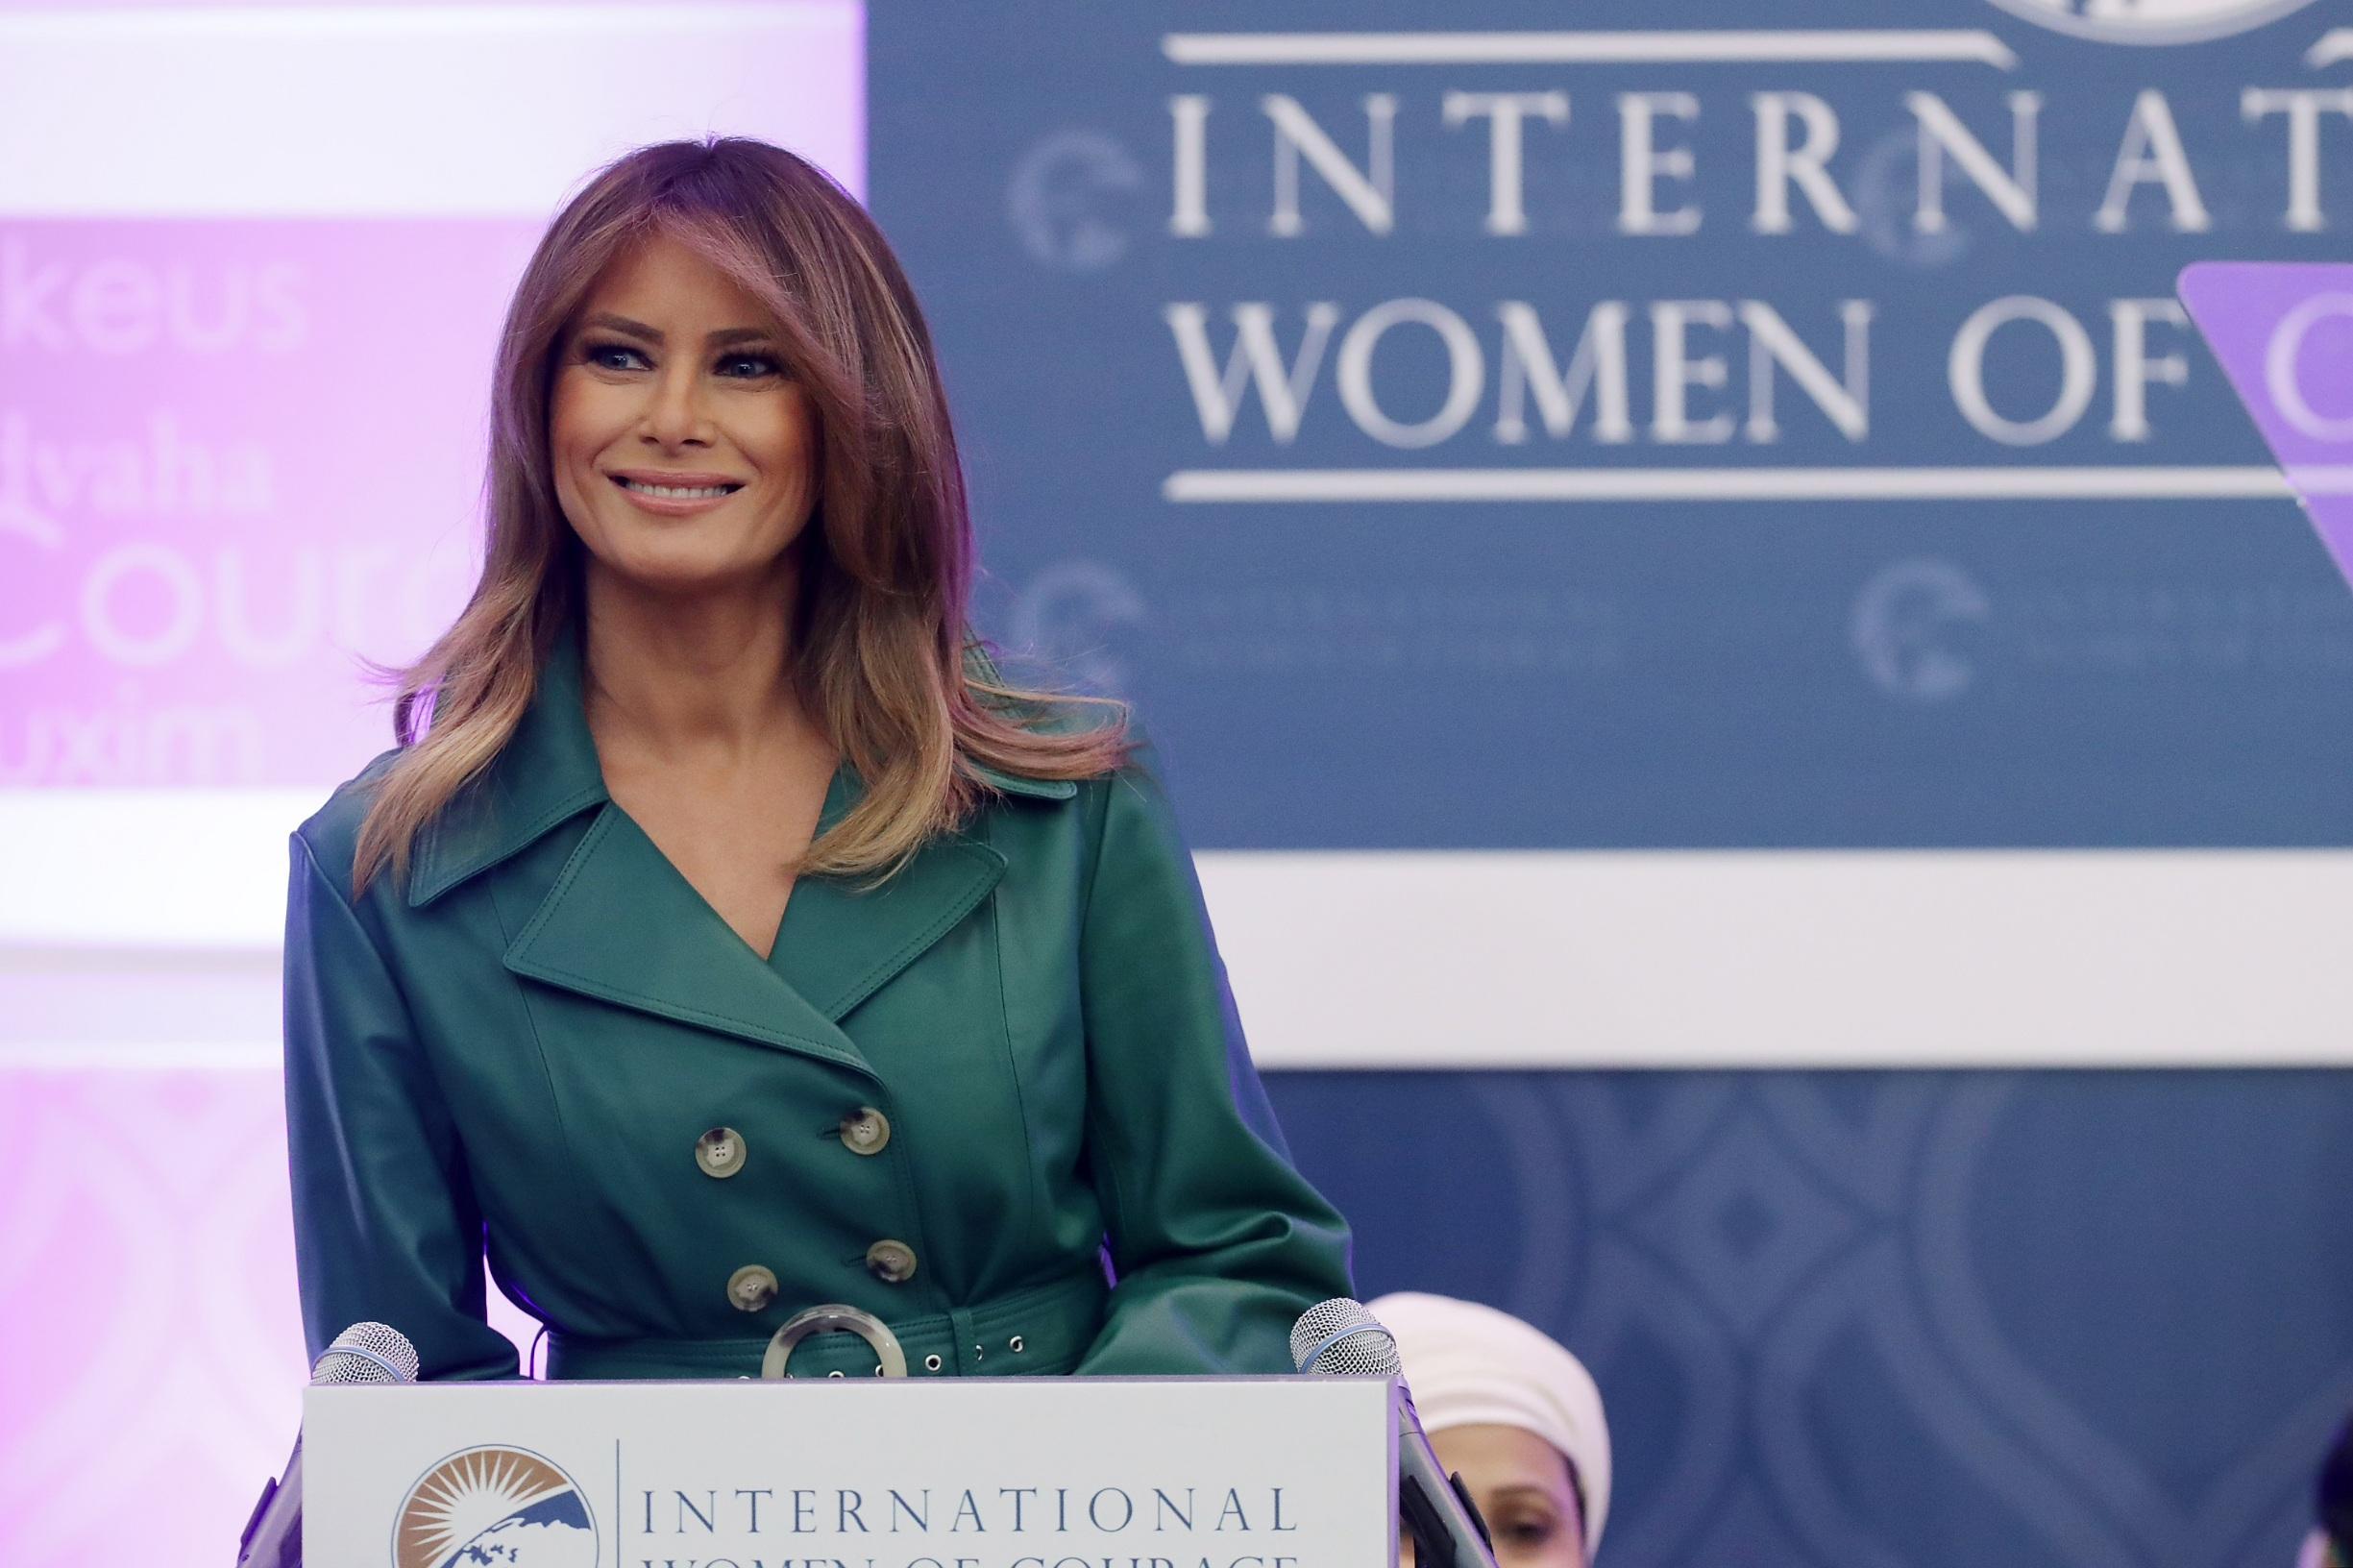 WASHINGTON, DC - MARCH 07: First lady Melania Trump delivers remarks during the International Women of Courage Awards in the Dean Acheson Auditorium at the Department of State's Harry S. Truman building March 07, 2019 in Washington, DC. Ten women from all over the world were recognized for their work in human rights, education, journalism, law enforcement and other endeavors that furthered women's rights and representation.  (Photo by Chip Somodevilla/Getty Images)